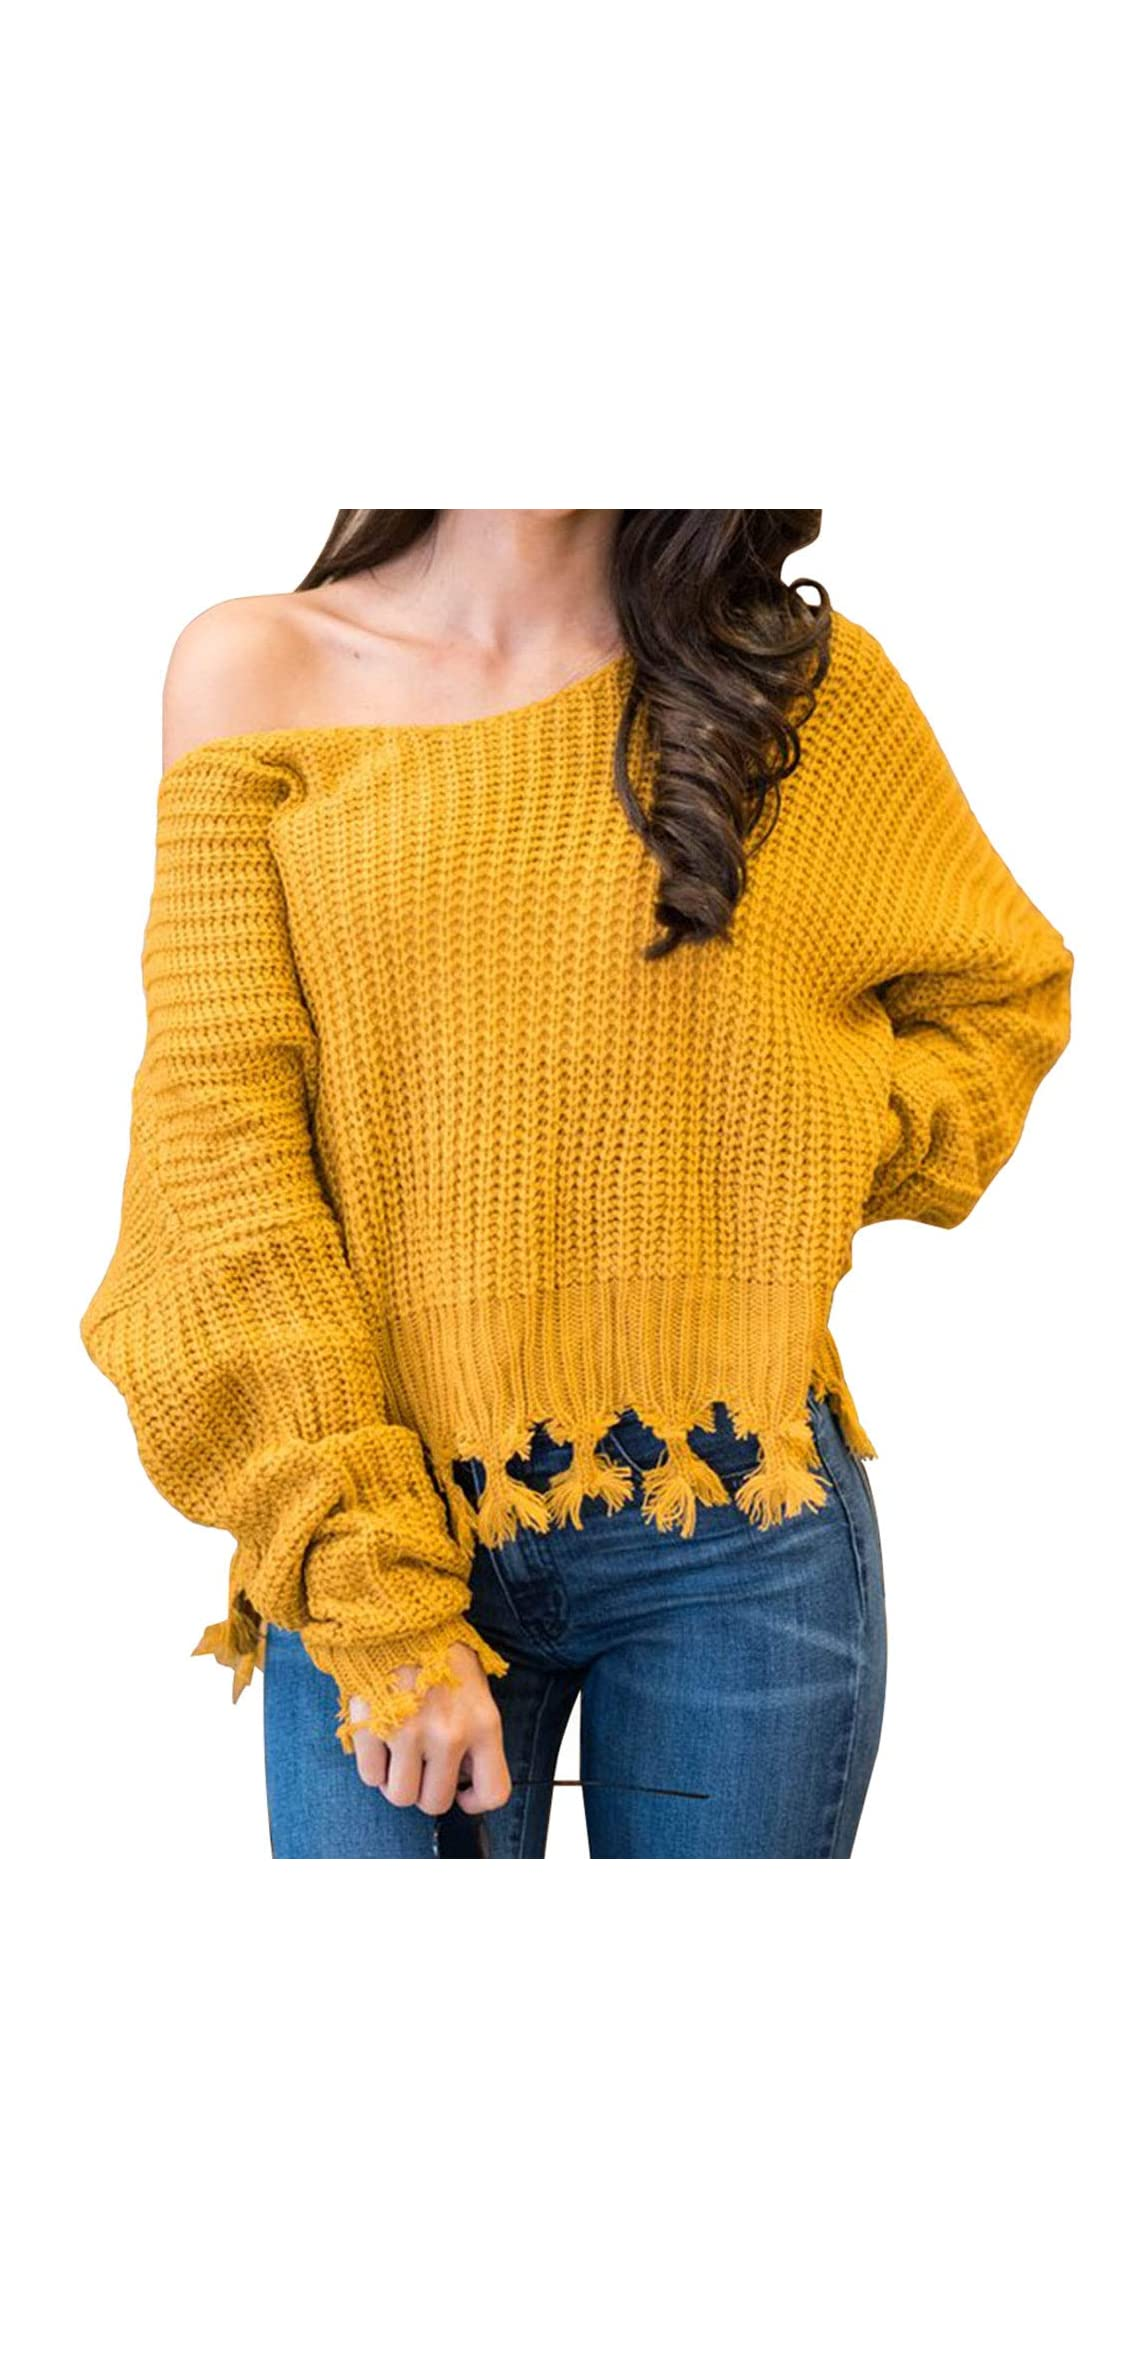 Women Pullover Sweaters Long Sleeve Crew Neck Knit Casual